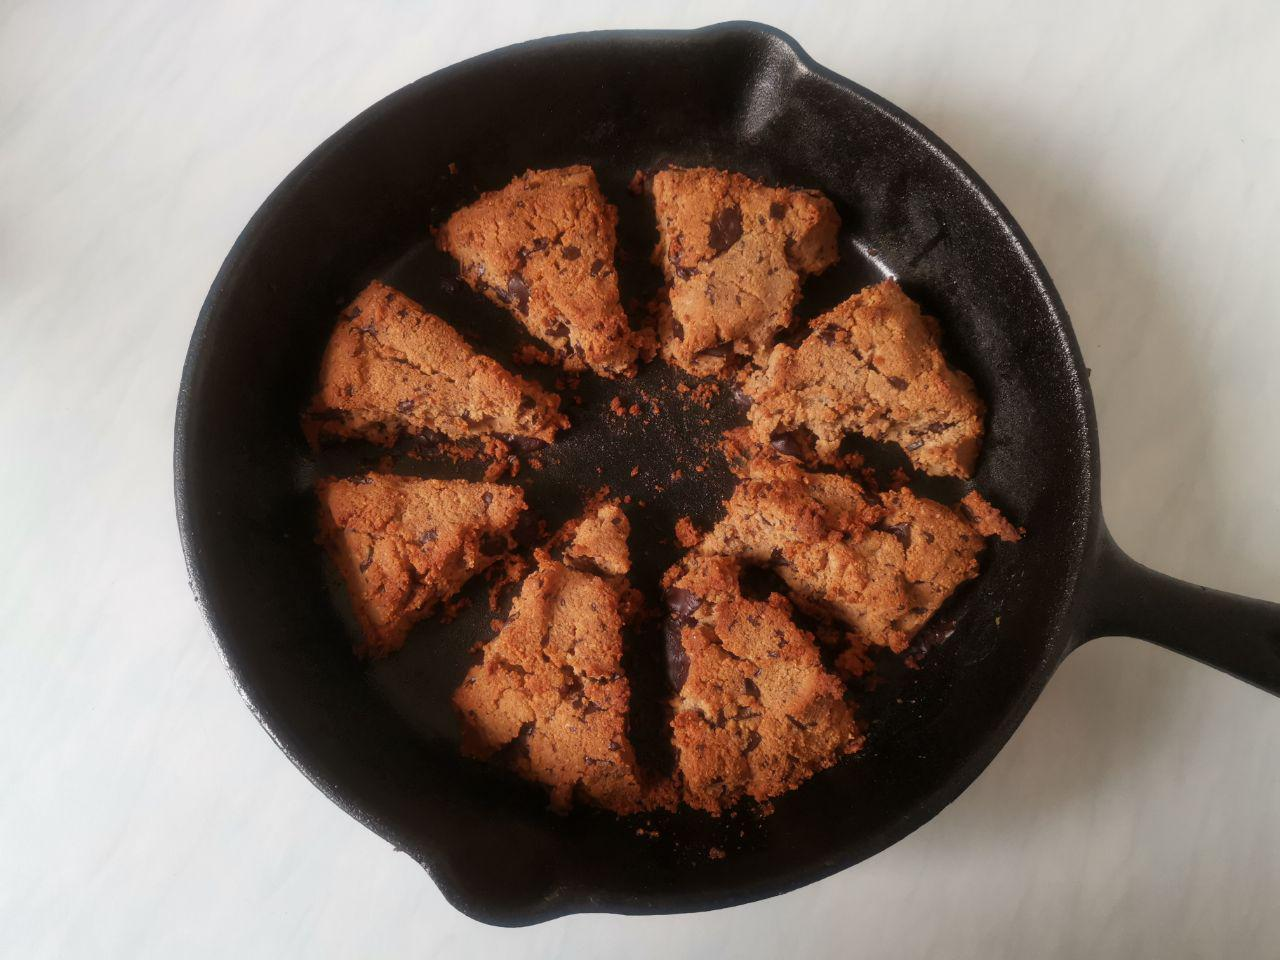 Keto Low Carb Chocolate Chip Scones